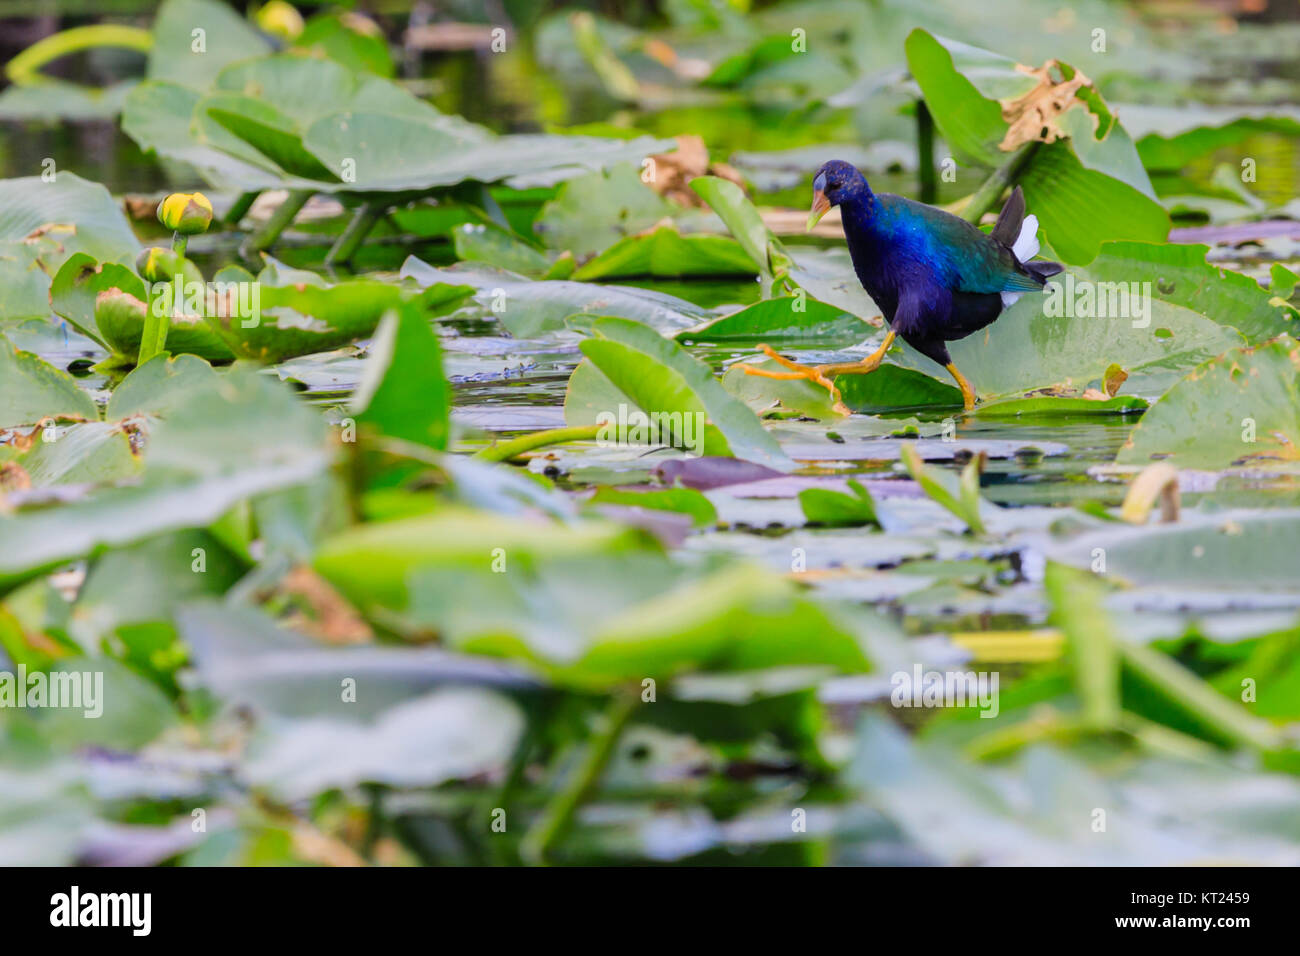 A male Purple Gallinule walking on lily pads in the swamp at Everglades National Park, Florida November 2017 Stock Photo